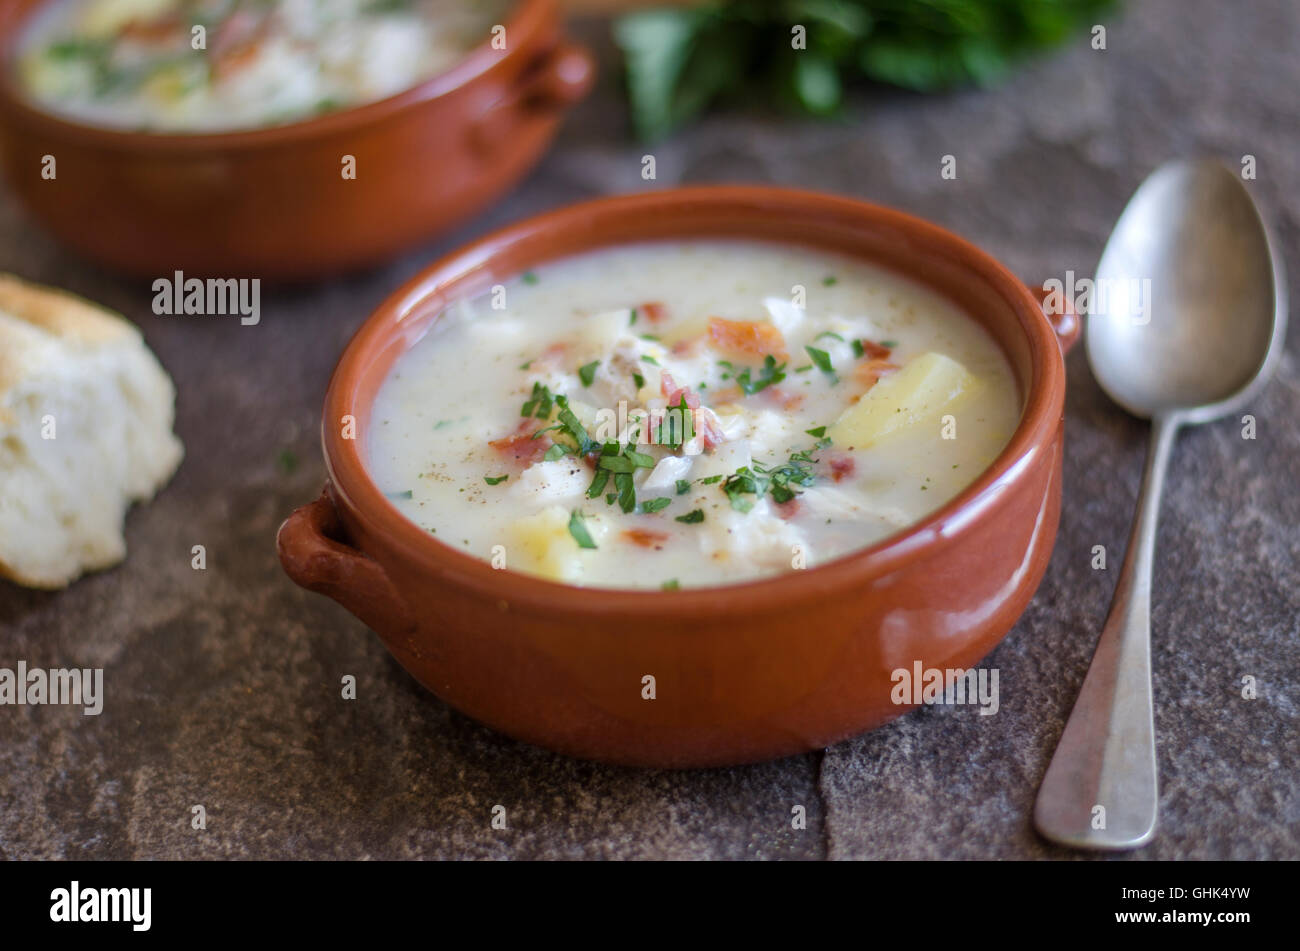 Smoked haddock chowder topped with crispy bacon - Stock Image